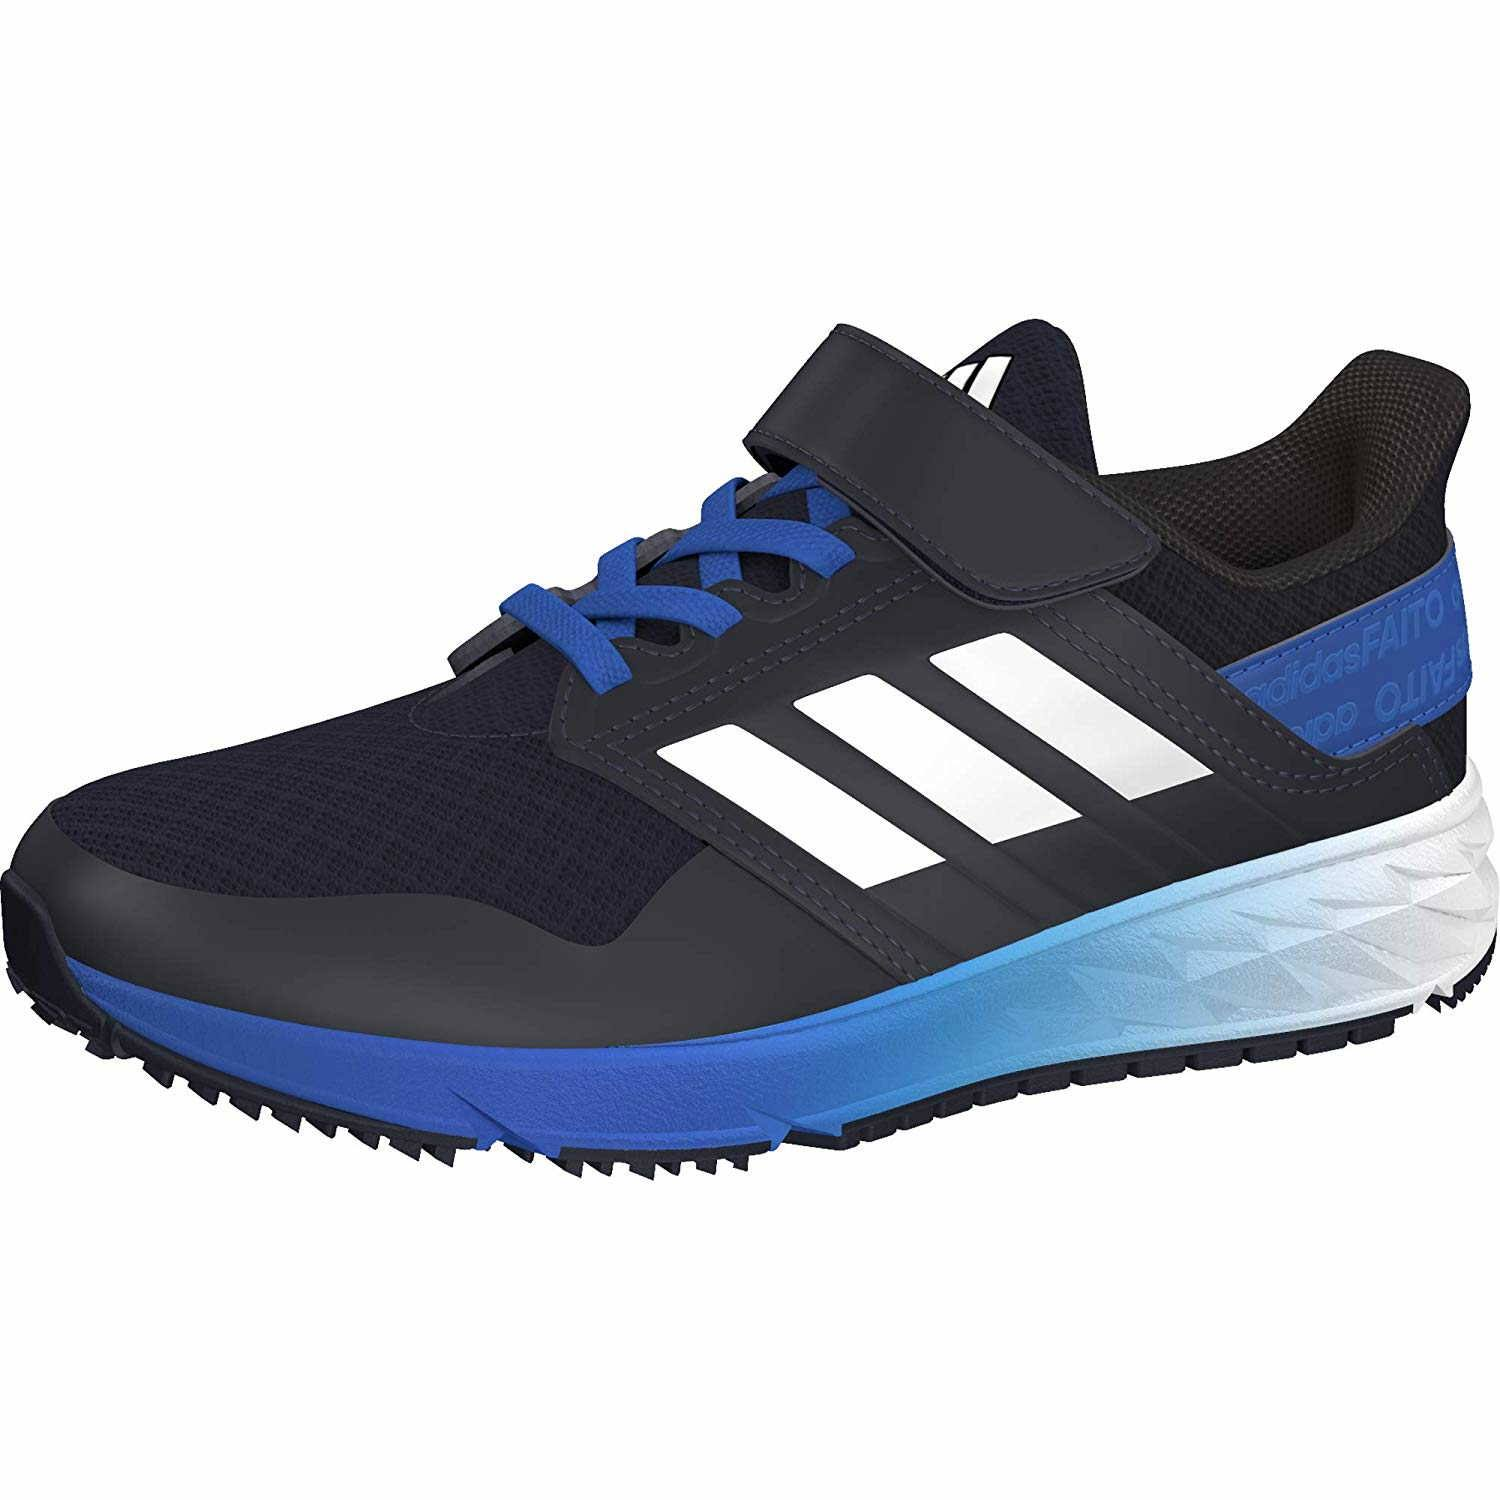 Adidas FortaFaito Shoes - Blue - Kids